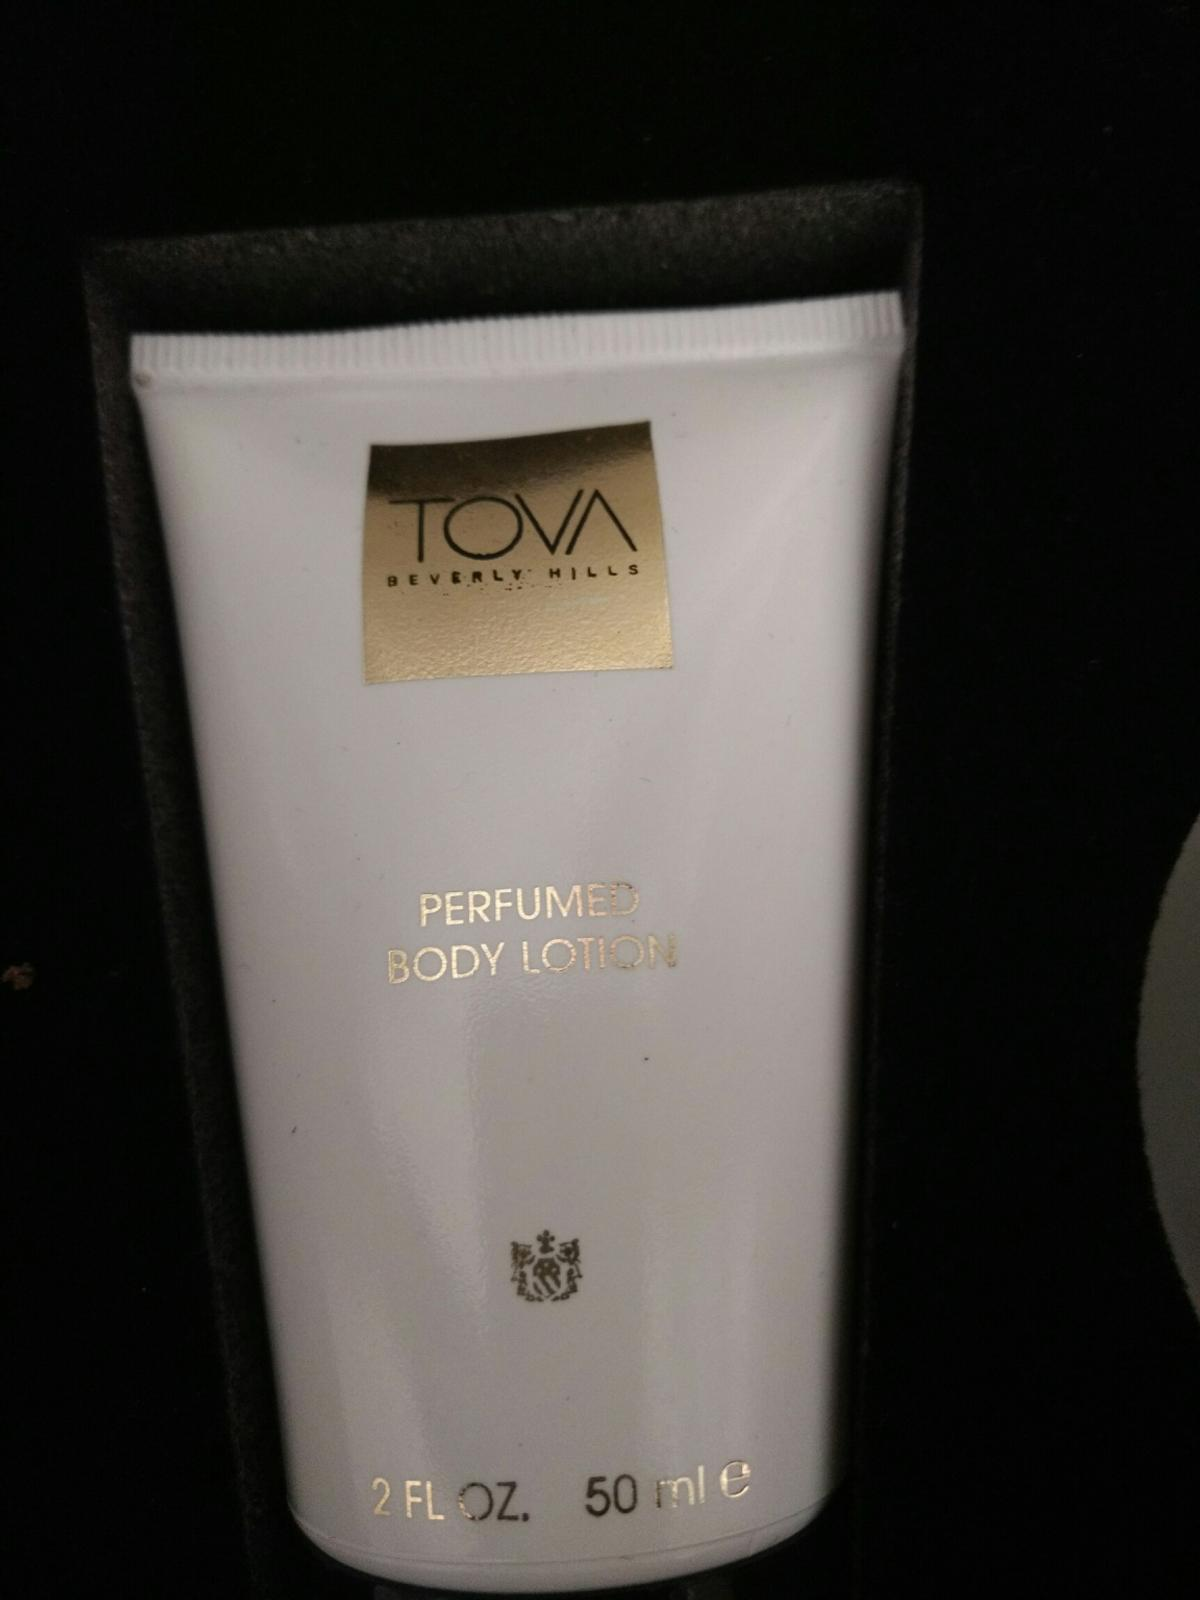 TOVA beverly hills this is one of the best women perfumes I have ever smelled. It comes with 30ml perfume spray, perfumes lotion and perfumed bath shower gel.